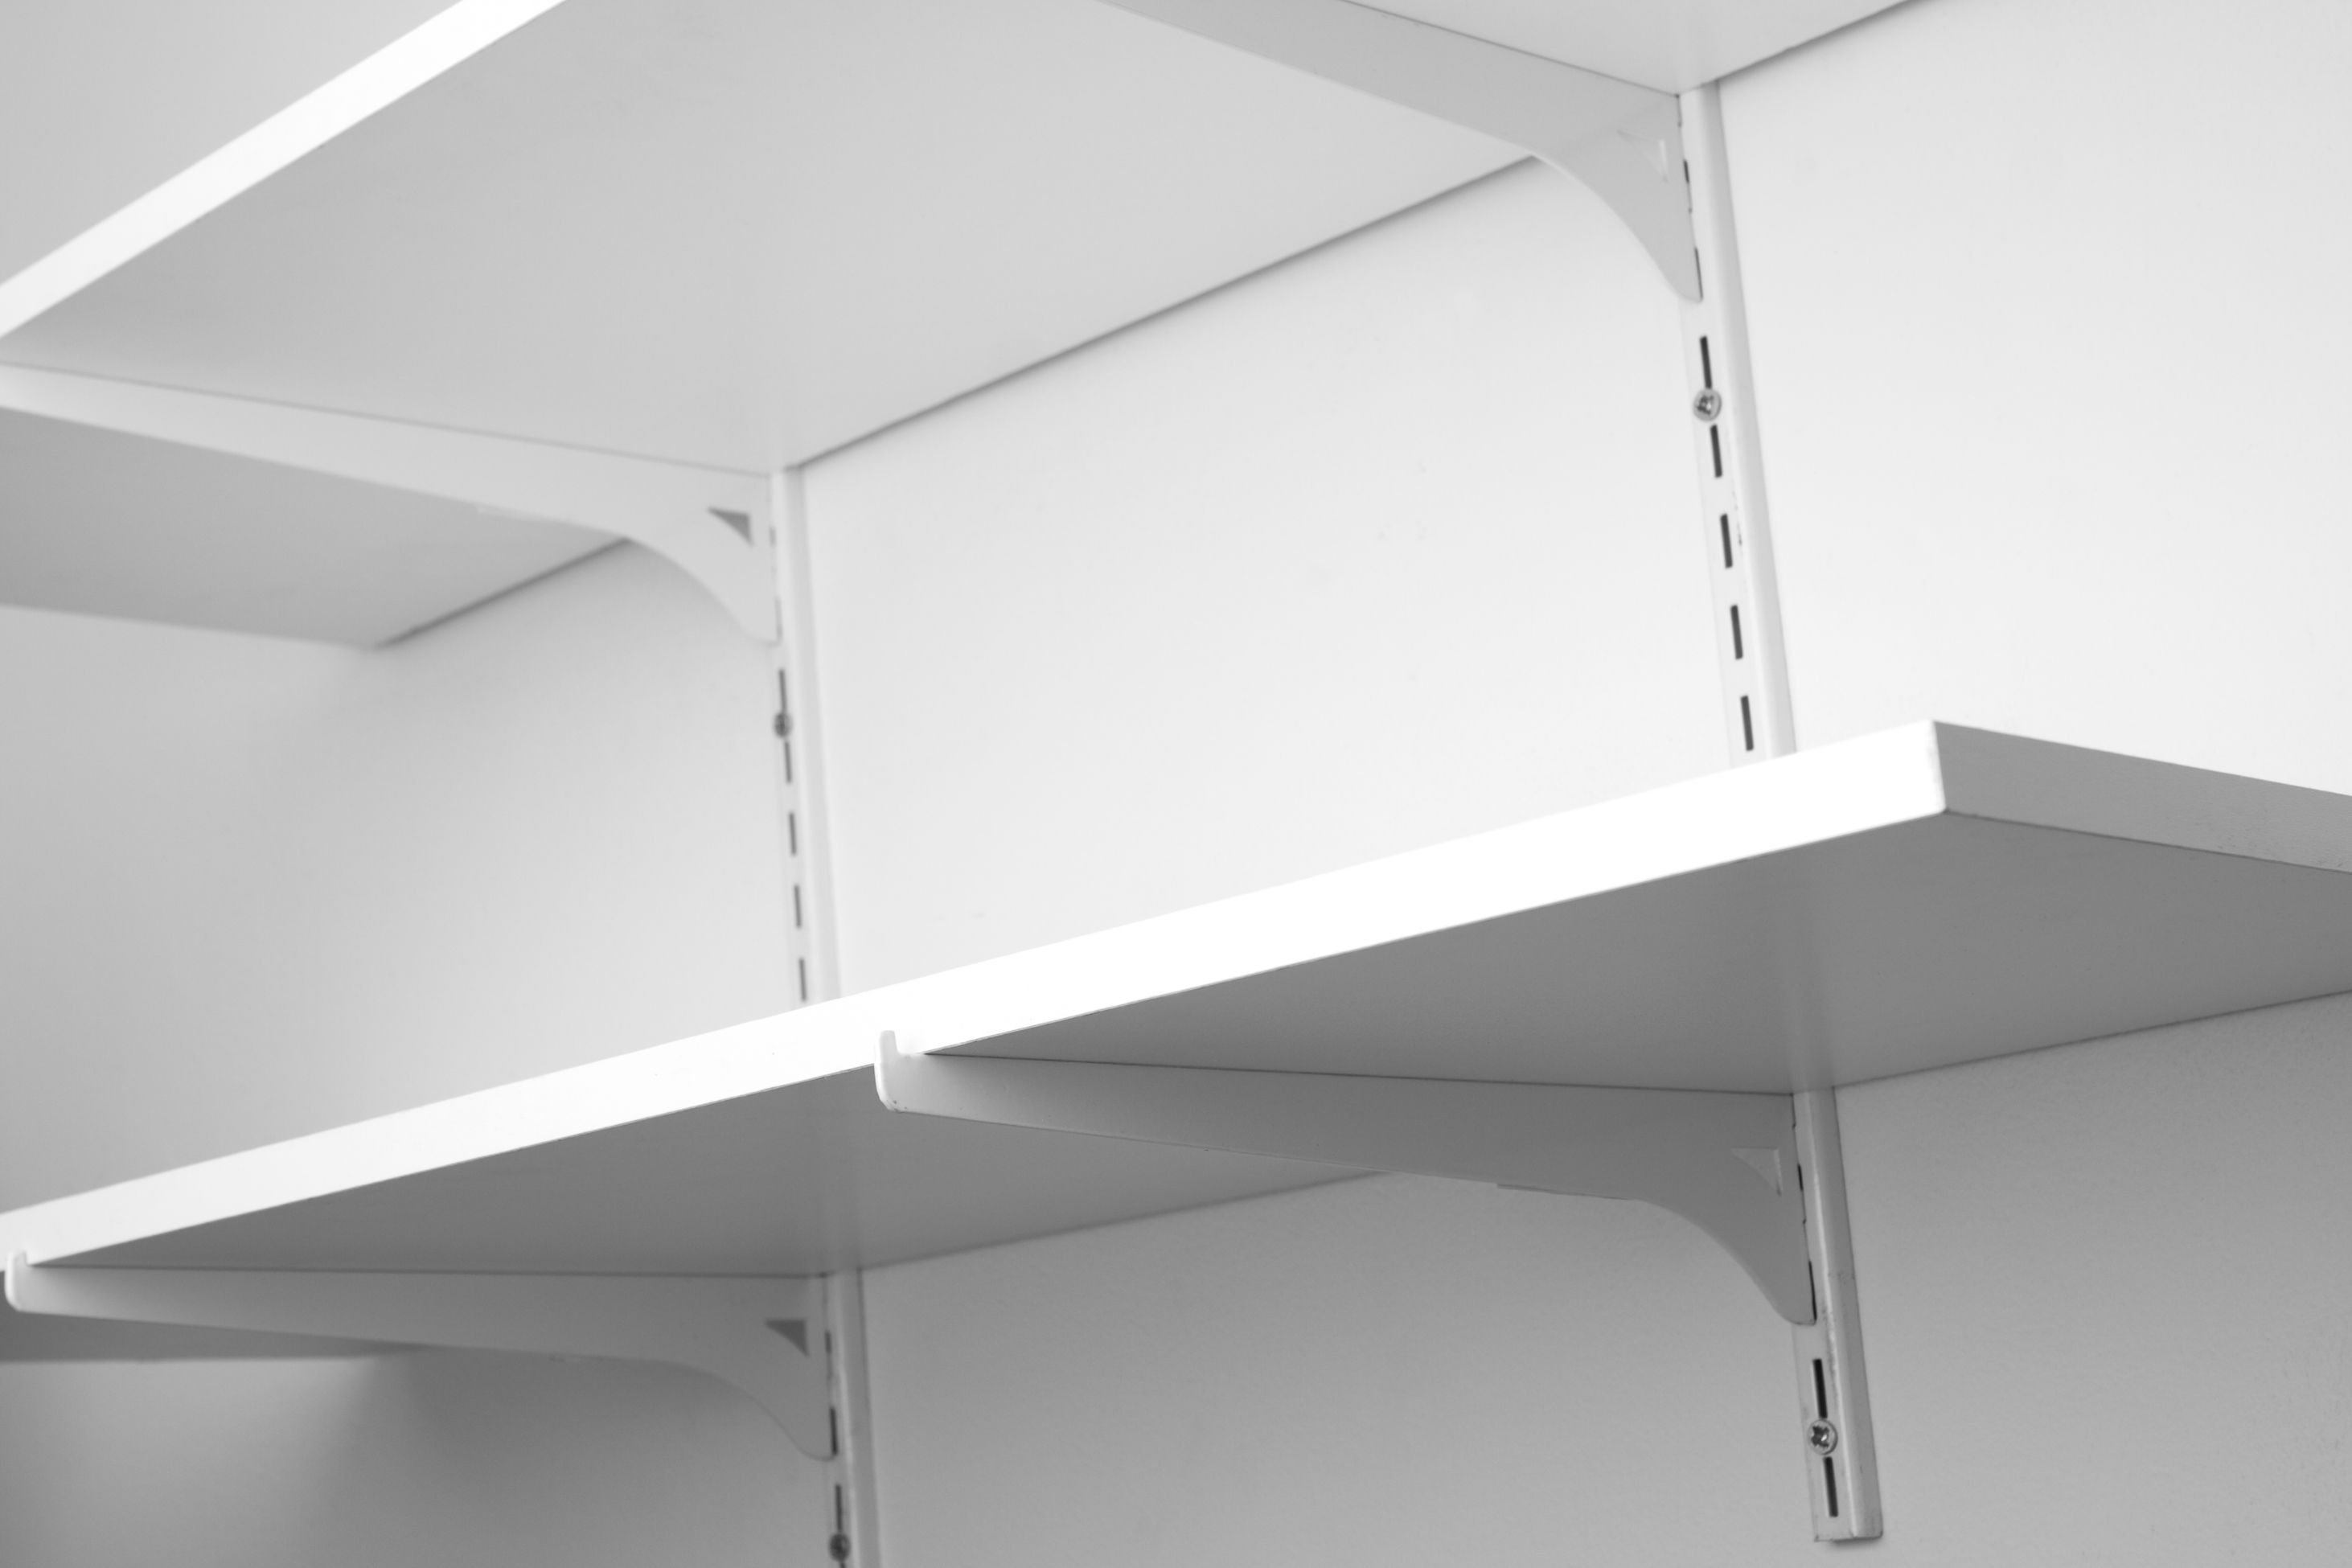 White Twin Slot Shelving Book End Accessories For Shelving Systems